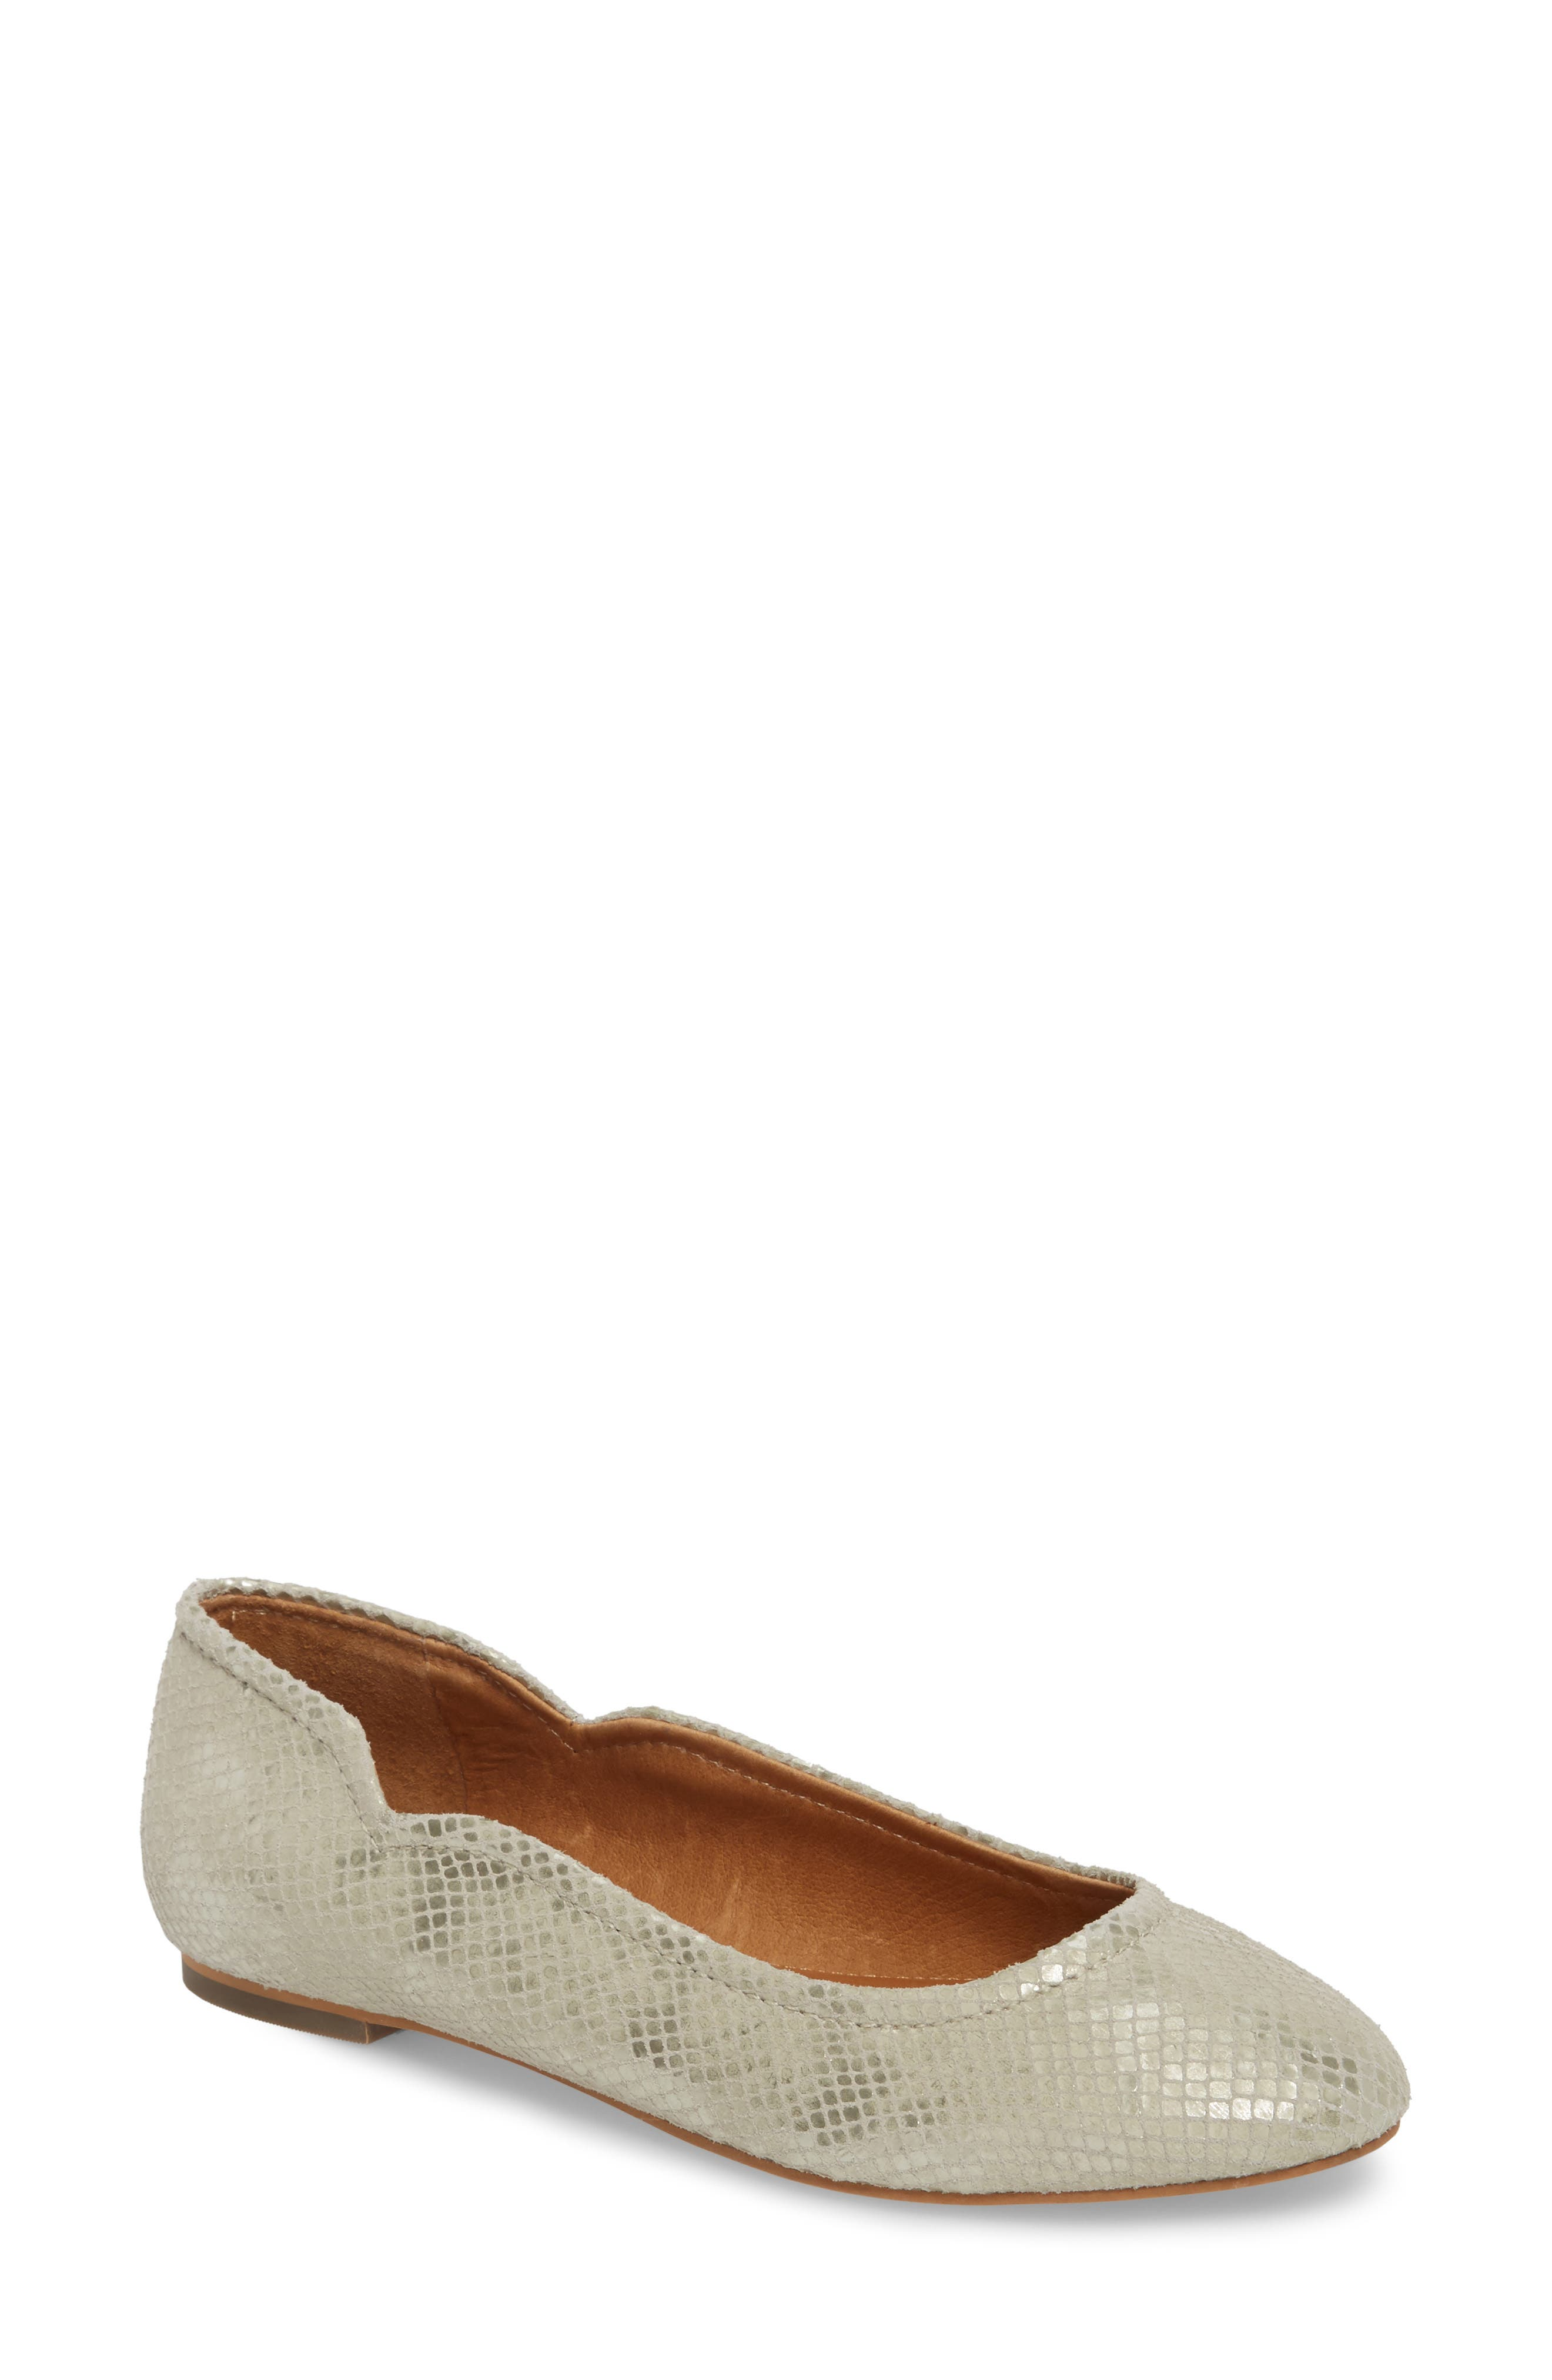 Callie Flat,                         Main,                         color, MOON LEATHER